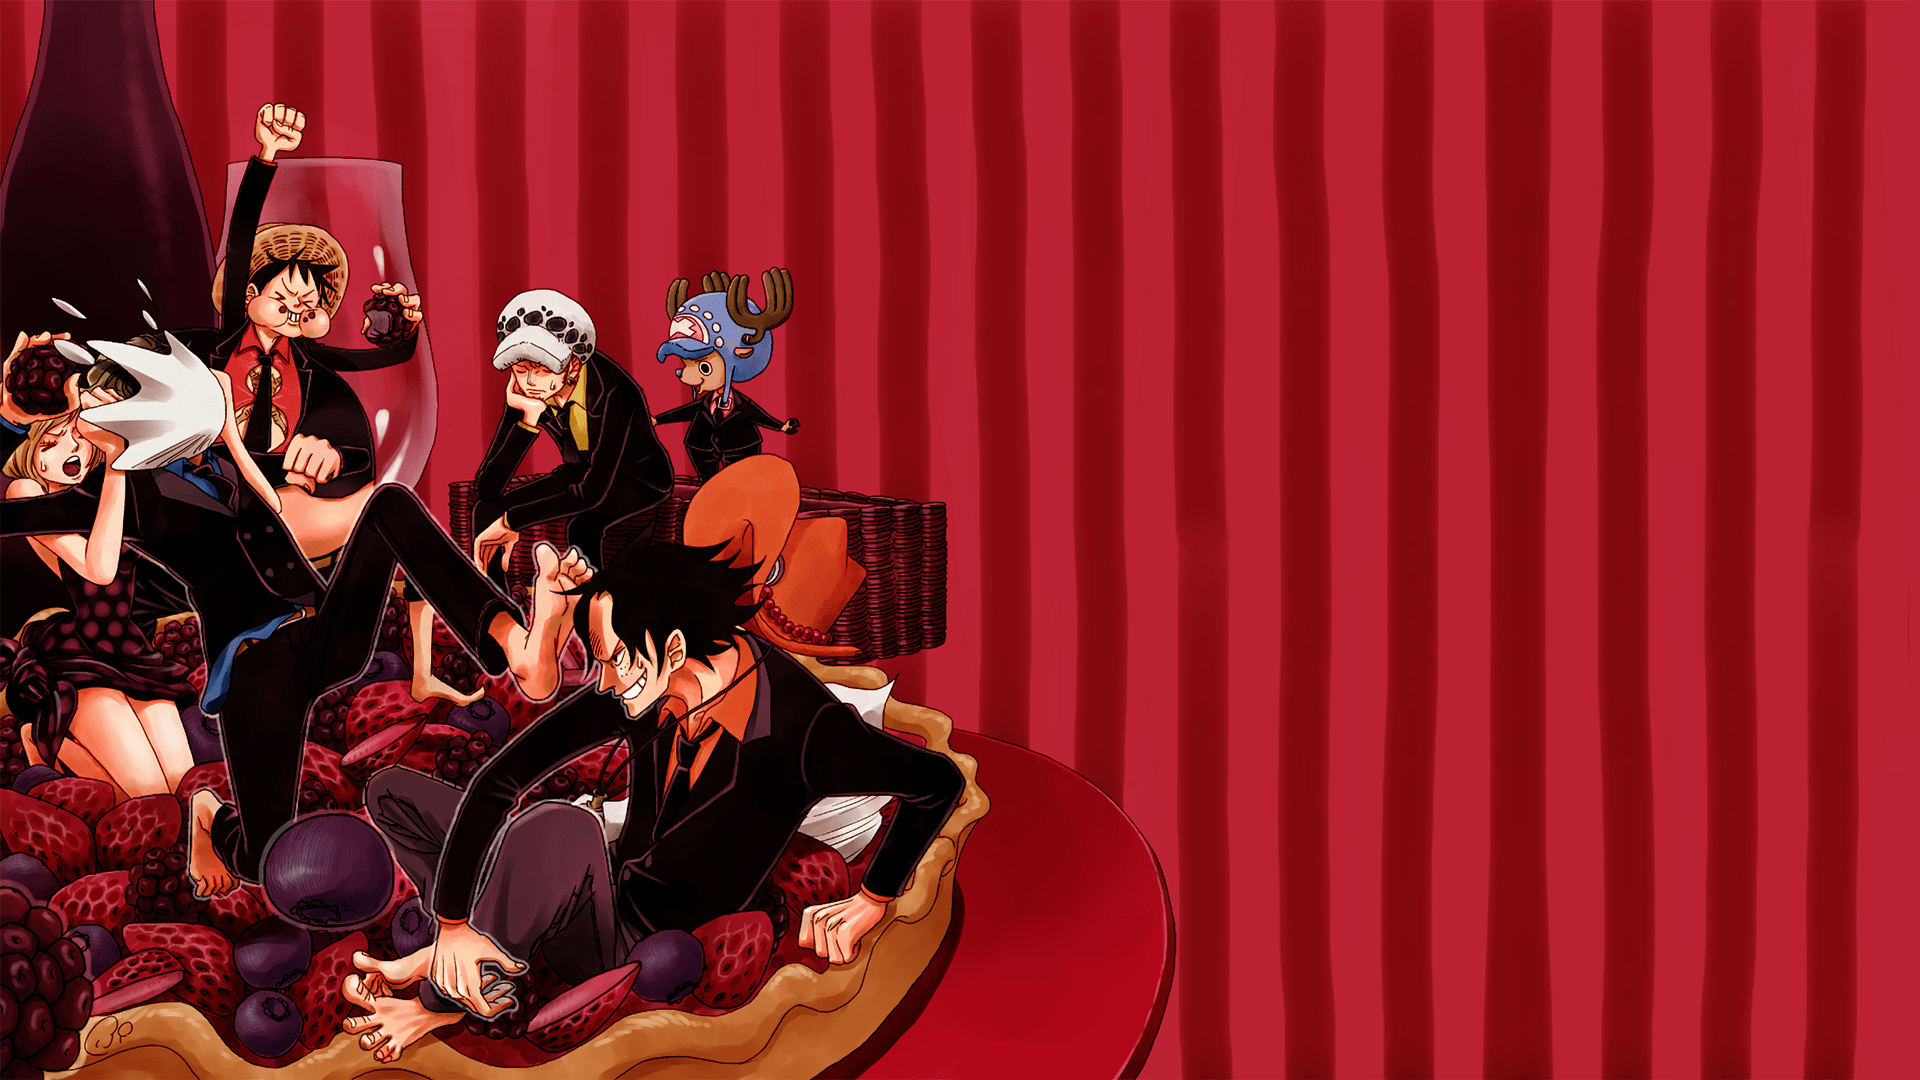 One piece dual monitor wallpaper 3840x1080. One Piece HD Wallpaper | Background Image | 1920x1080